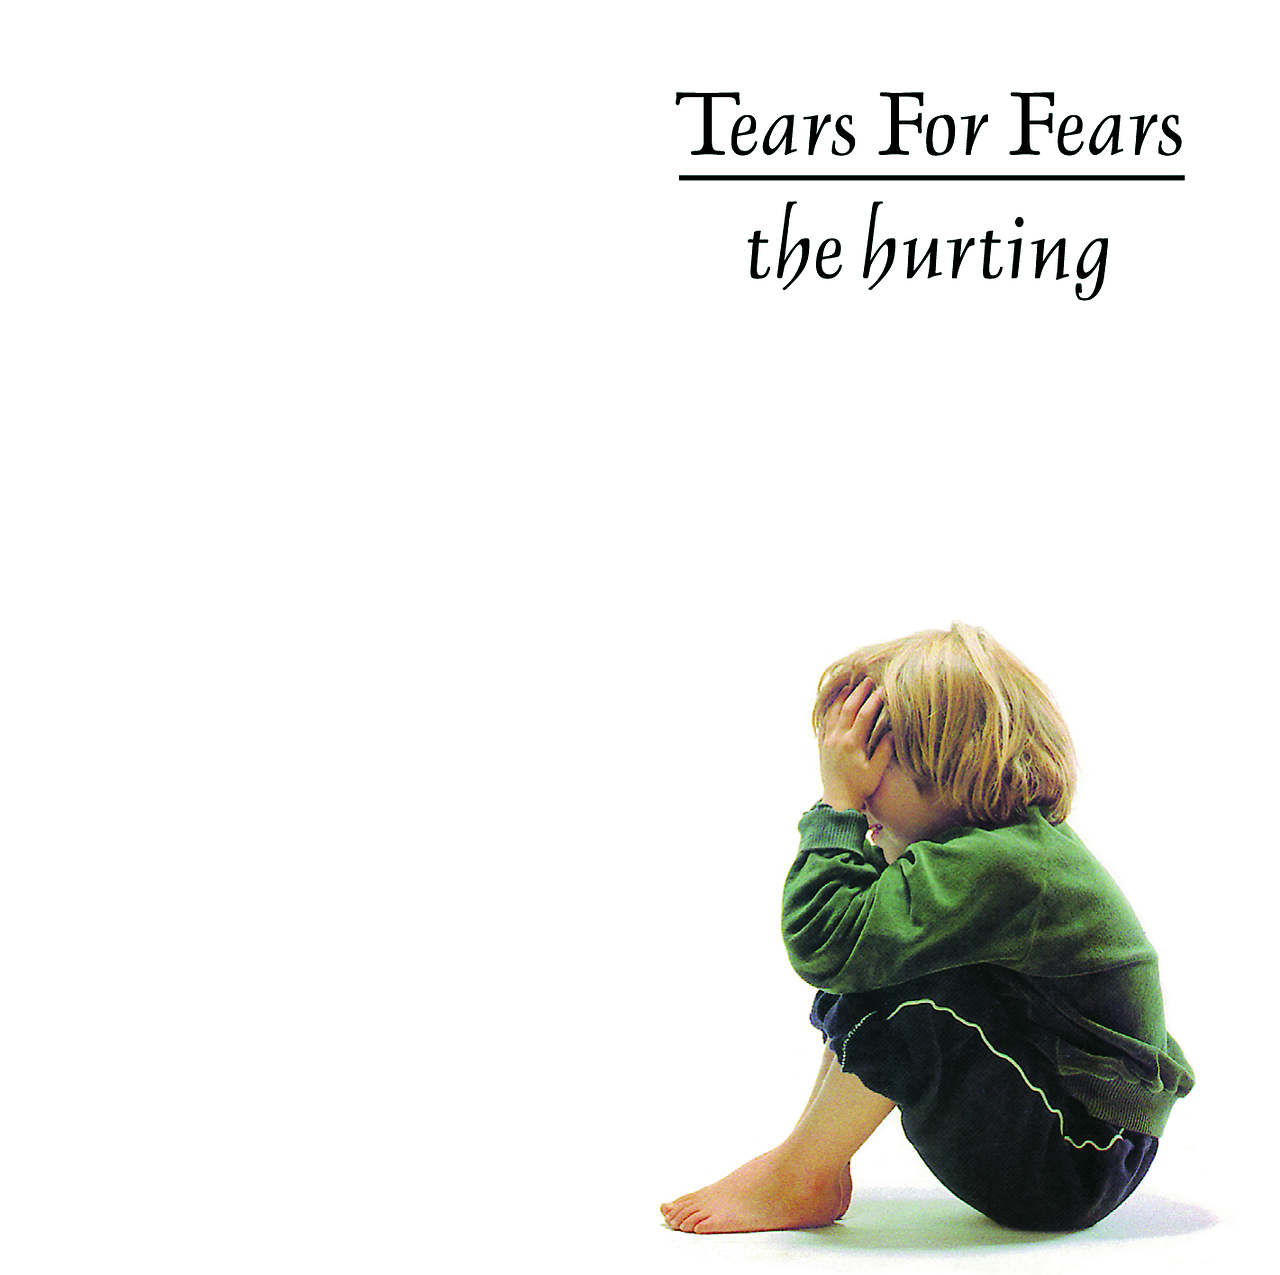 """tearsforfears :      """"I was asked by the band to sit for the picture when I was five or six. My mum took me to the studio in London. I think I was a bit freaked by all the cameras and stuff. There was a giant roll of white paper I had to sit in front of and I remember thinking if the paper in London is this big imagine what the pens must be like. Anyway in the image you see I'm supposed to be crying but actually I couldn't stop laughing.     Some time later Curt and Roland came to visit and my mum told me they had a special present for me to say thank you. I excitedly tore open the big brown paper flat thing to find a framed gold disc of the Hurting. I'm not sure how well if at all I managed to hide my disappointment - I guess I was expecting a toy or some sweets?    Anyway, 30 years on I can appreciate it a lot better so thanks and congrats!""""    Gebbie Serafin-Jaeger, the child from the iconic album cover for The Hurting"""